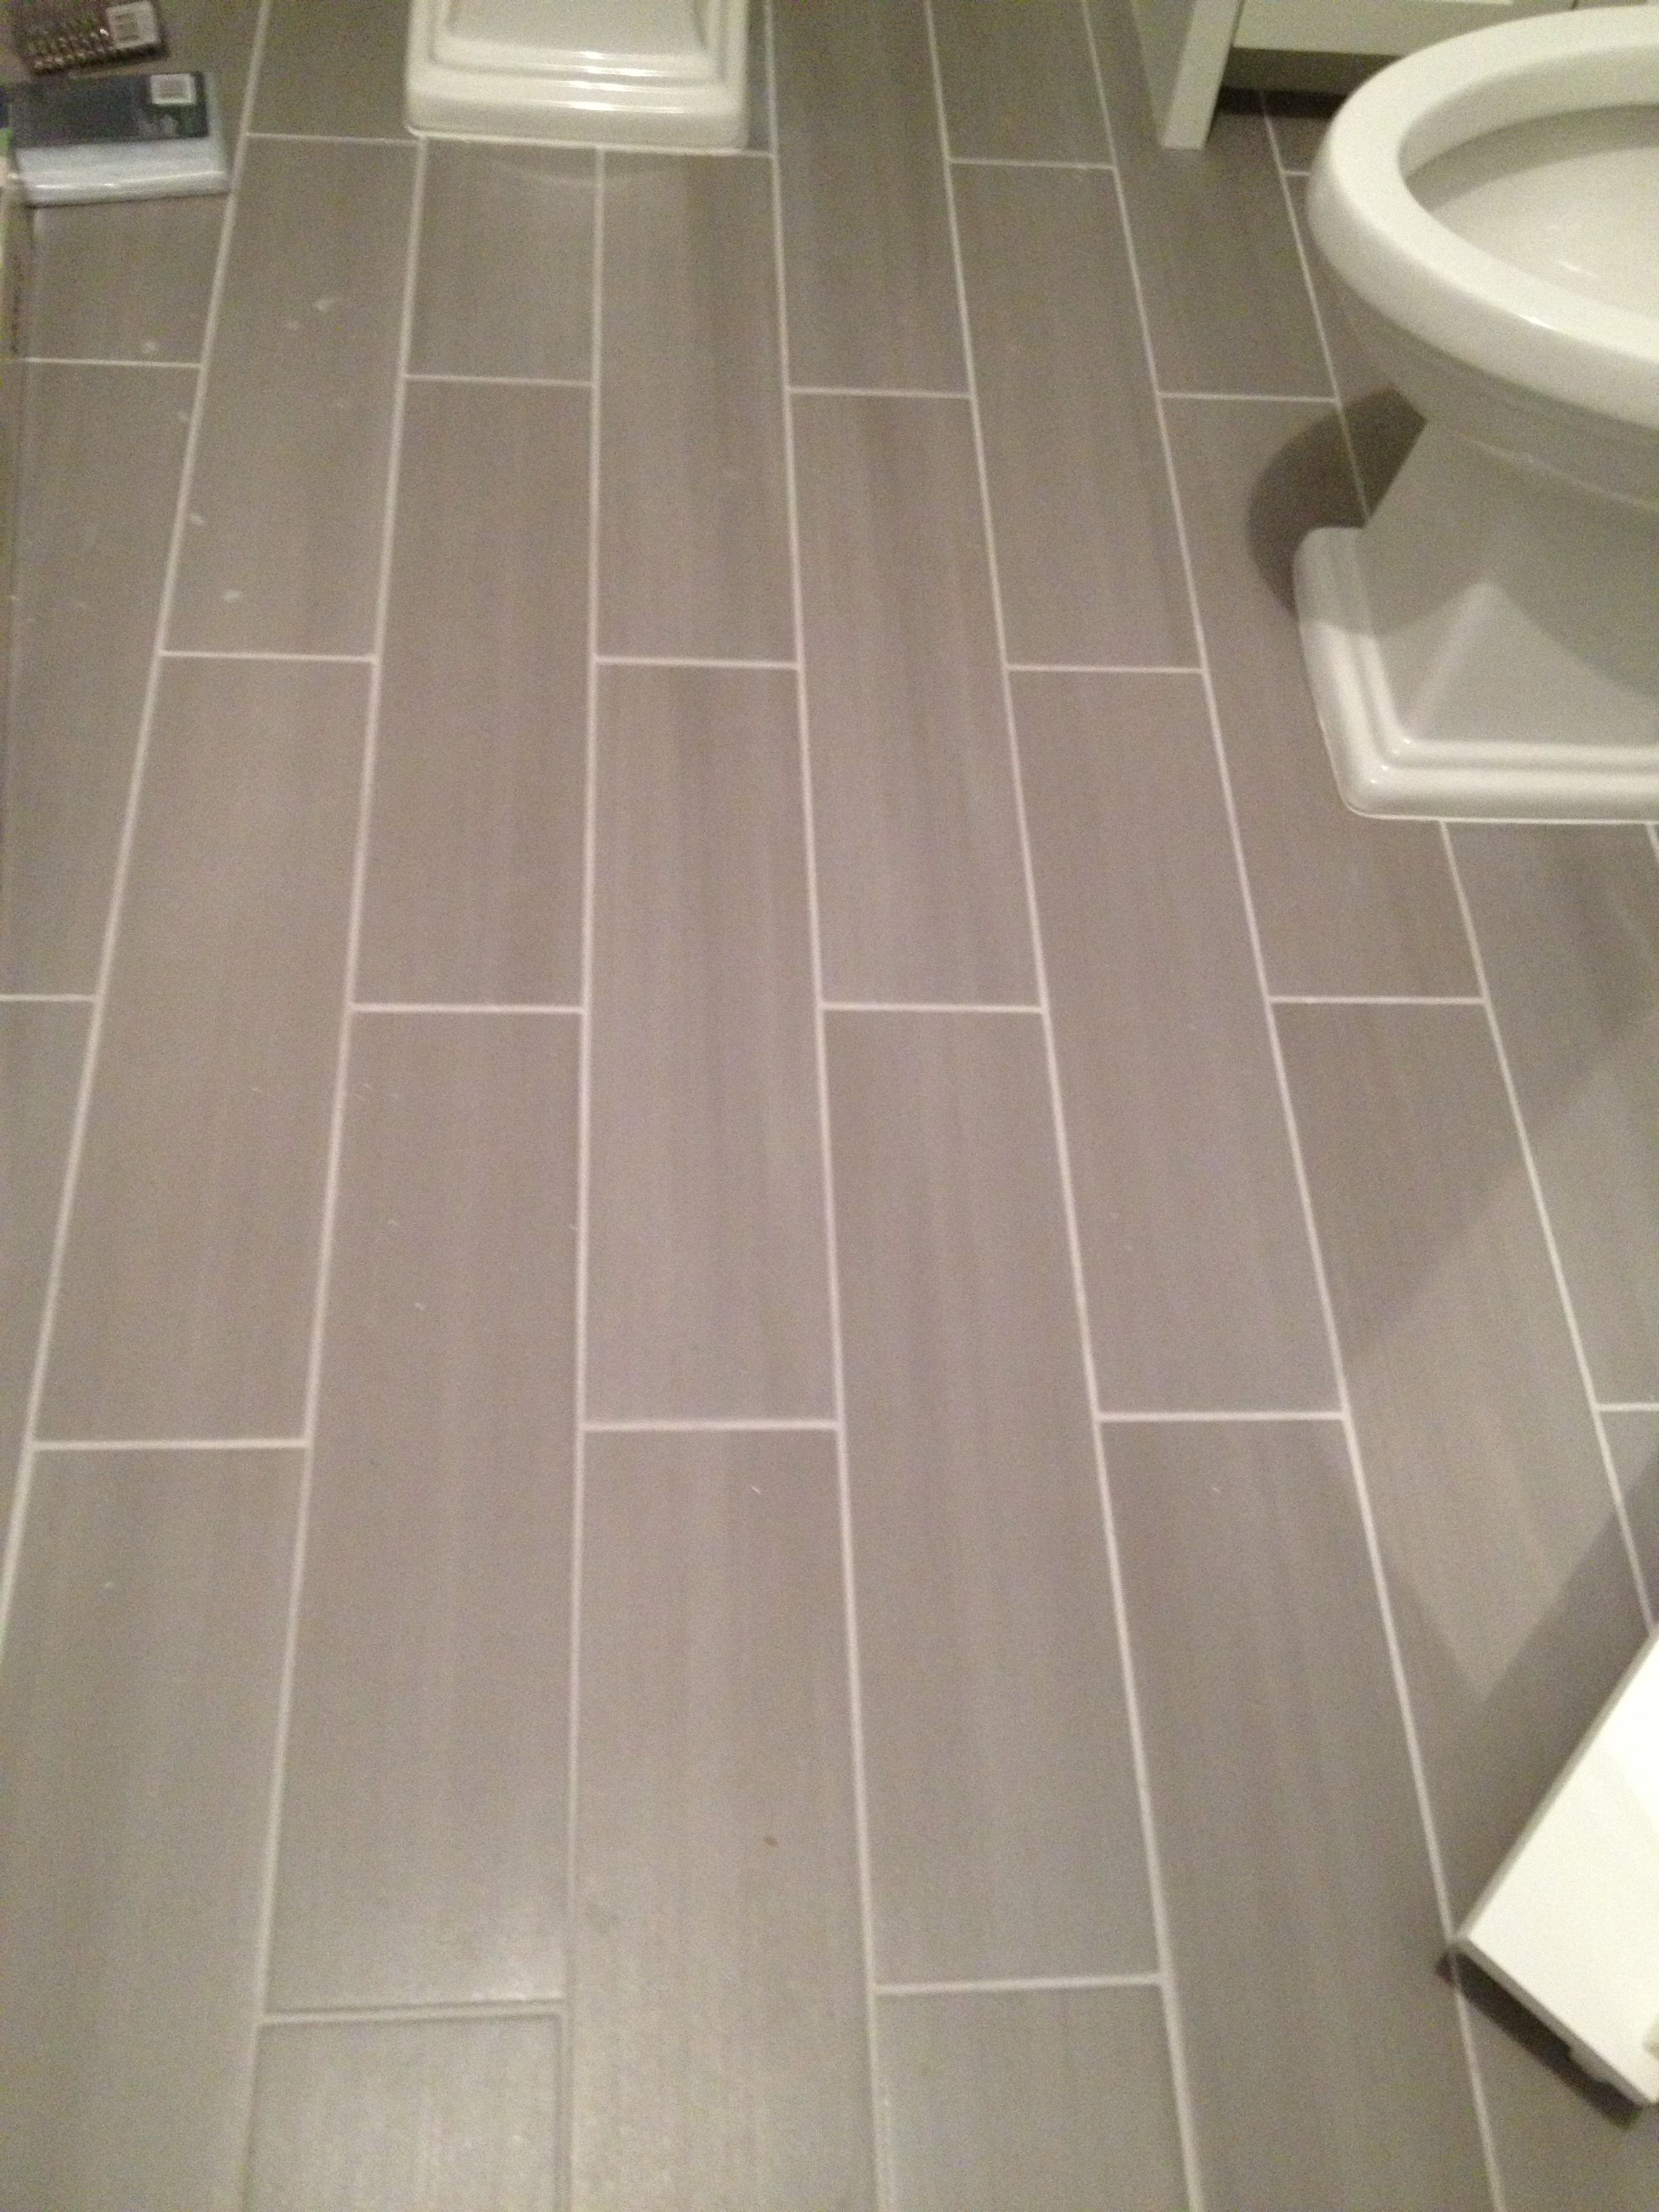 Grey Floor Tiles Bathroom Guest Bath Plank Style Floor Tiles In Gray Sarah